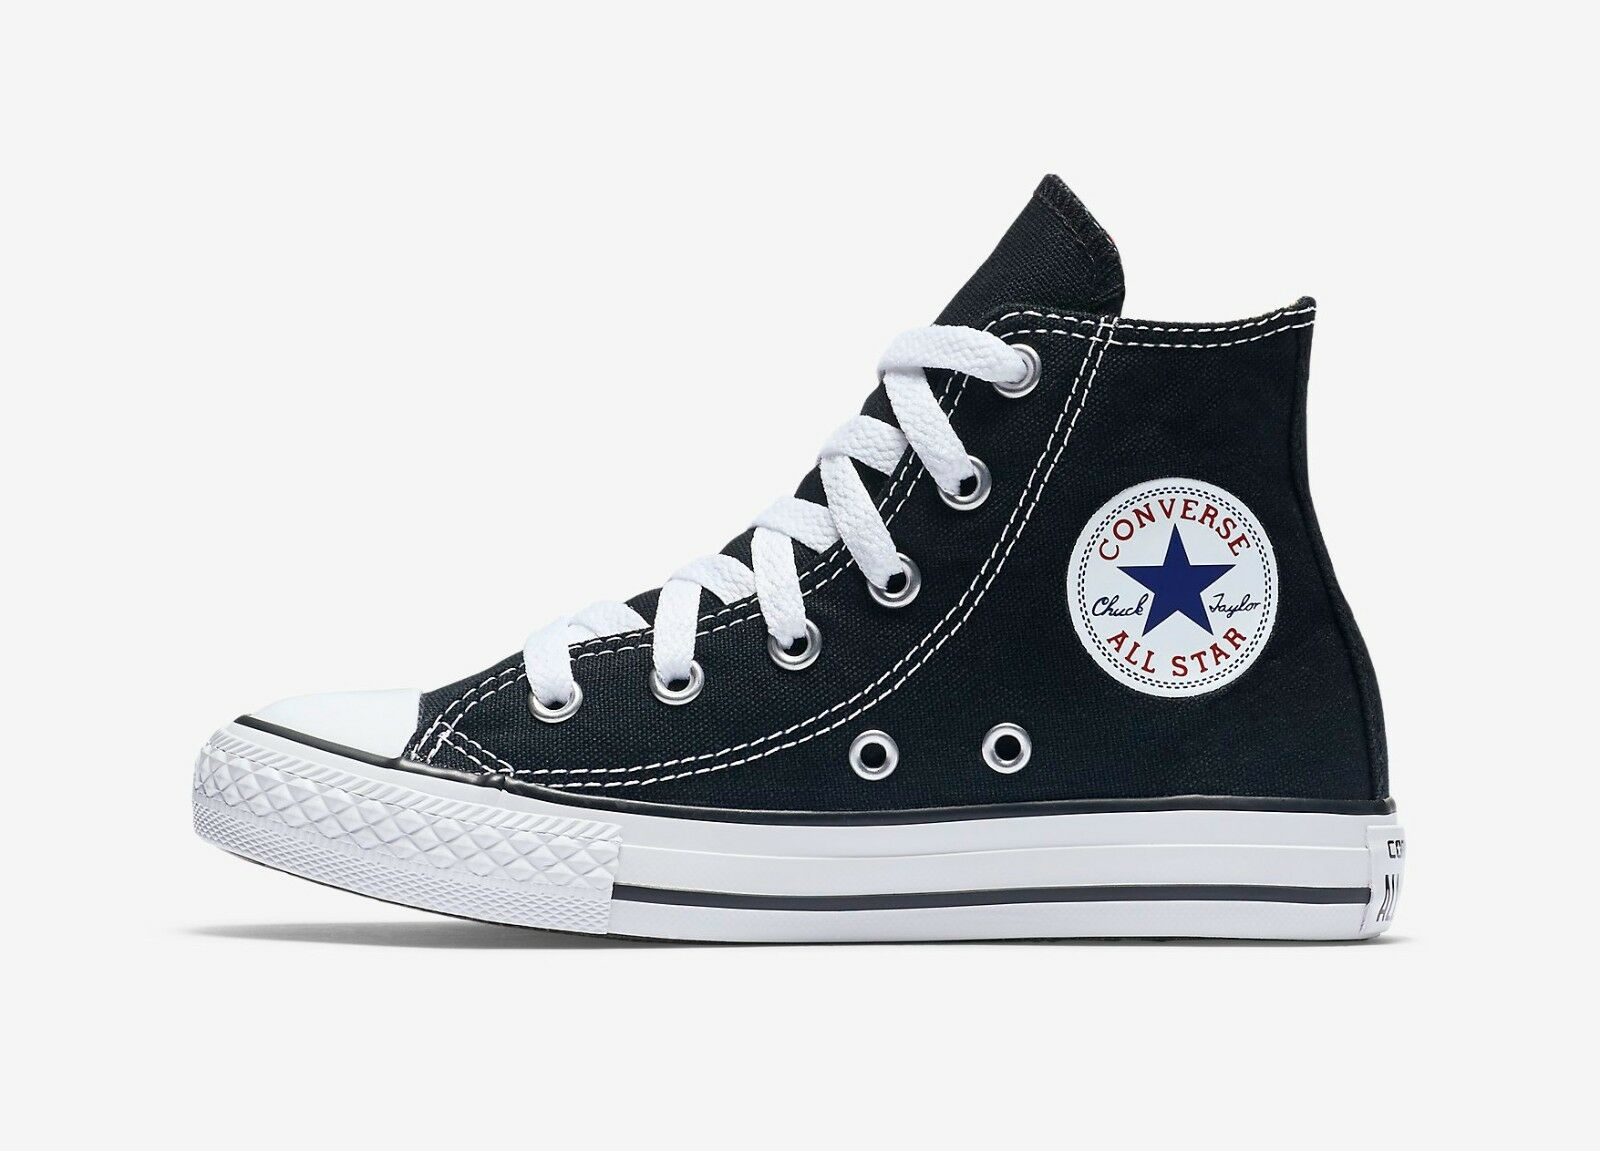 Girl's Sneakers & Athletic Shoes Converse Kids | eBay